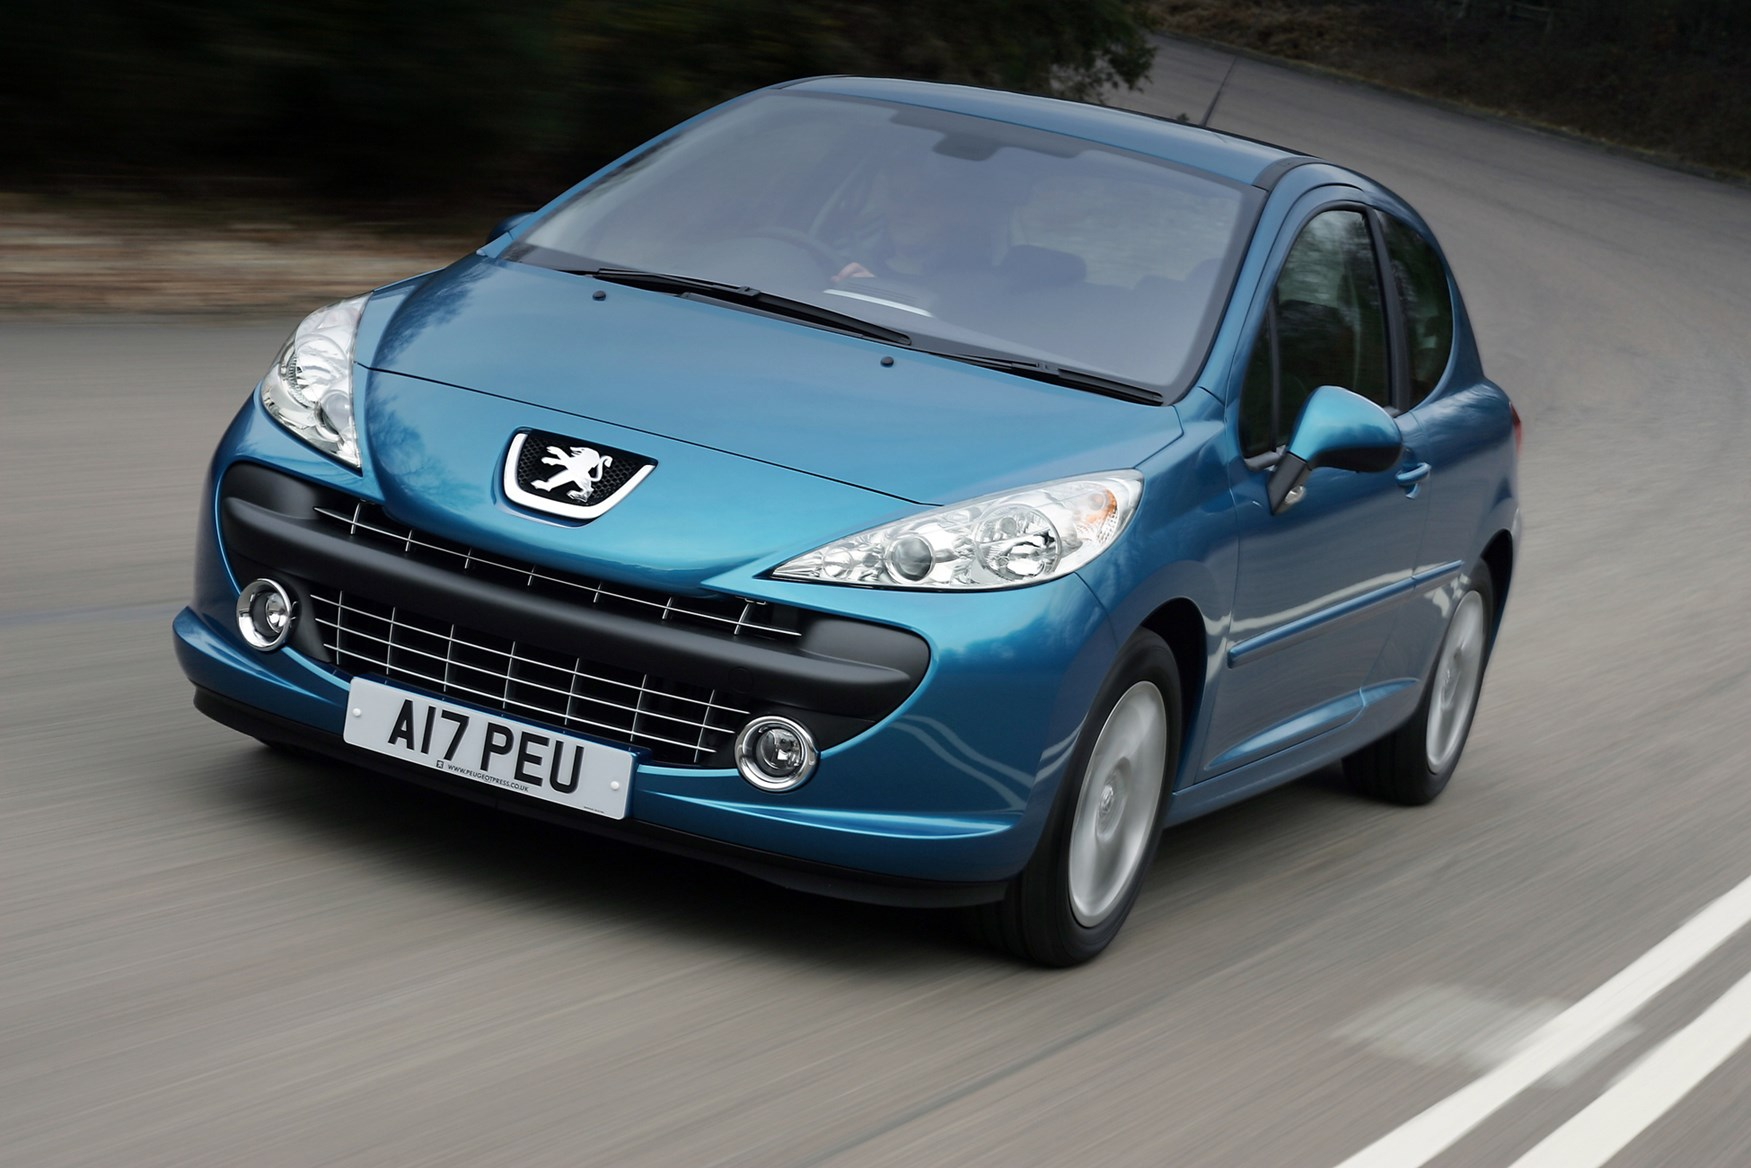 peugeot 207 hatchback review (2006 - 2012) | parkers